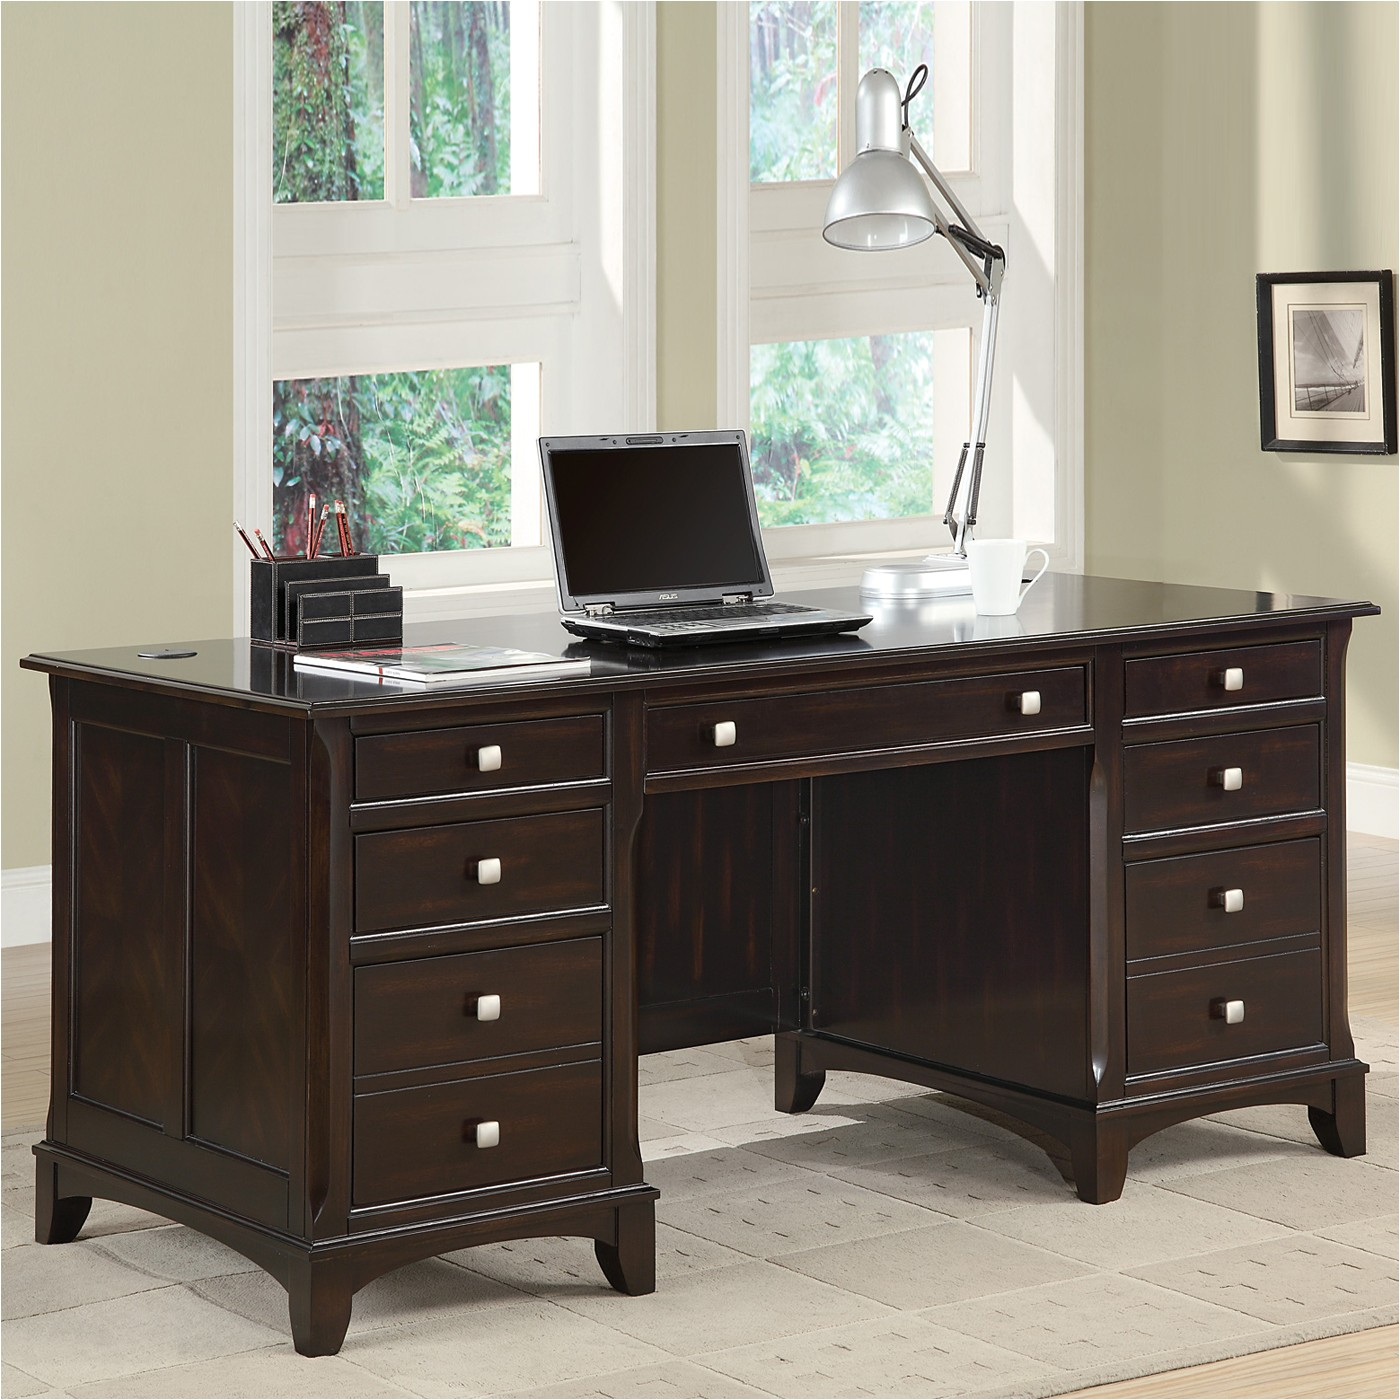 coaster fine furniture garson desk g1258857